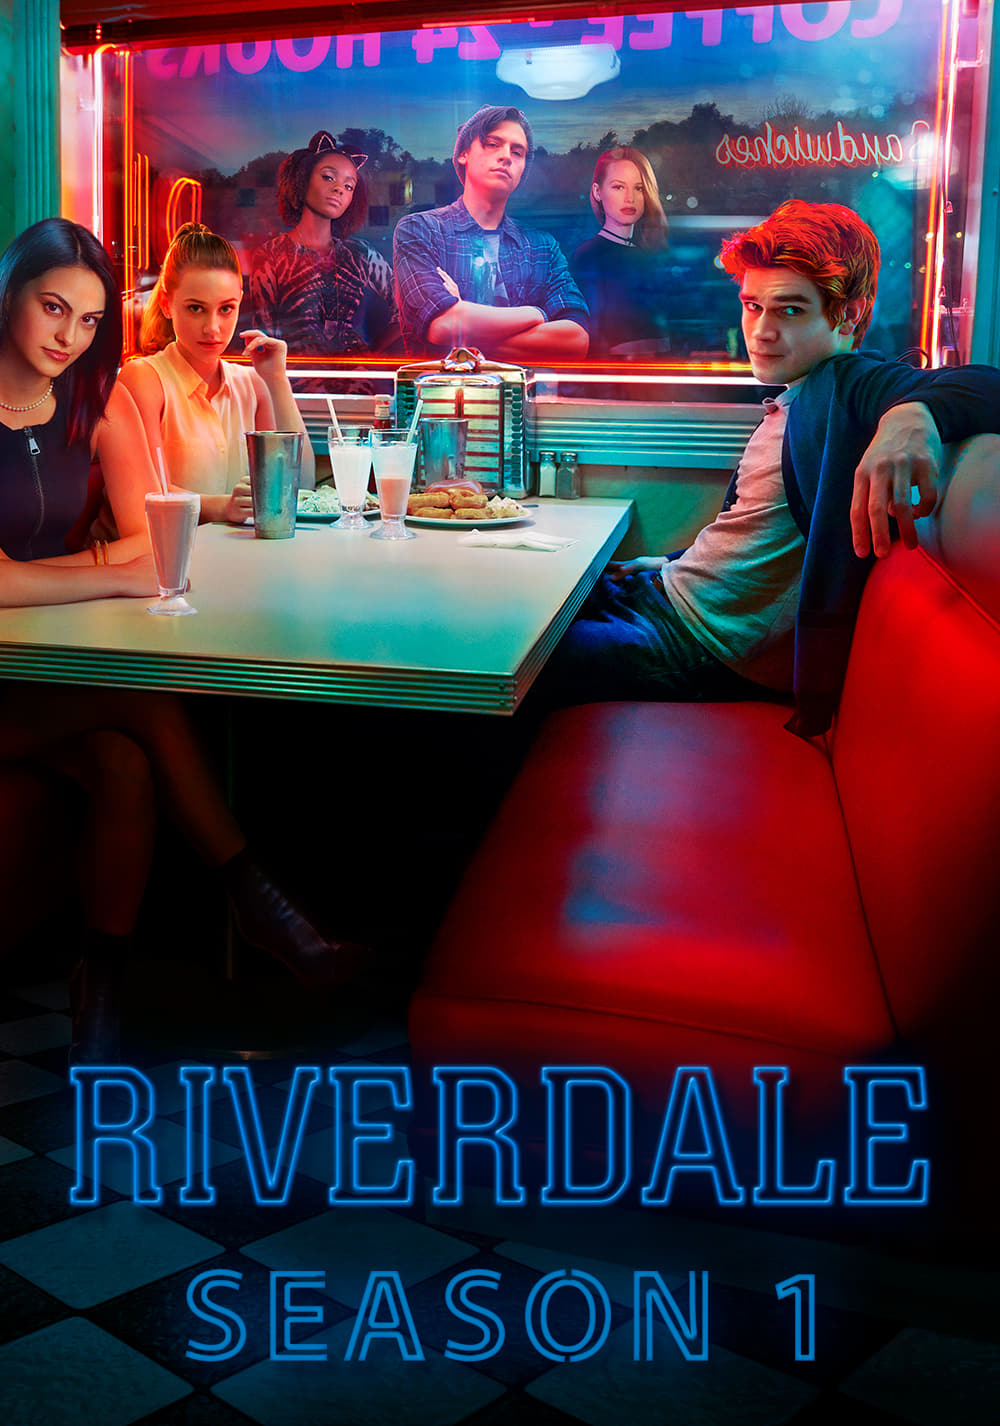 Riverdale Season 1